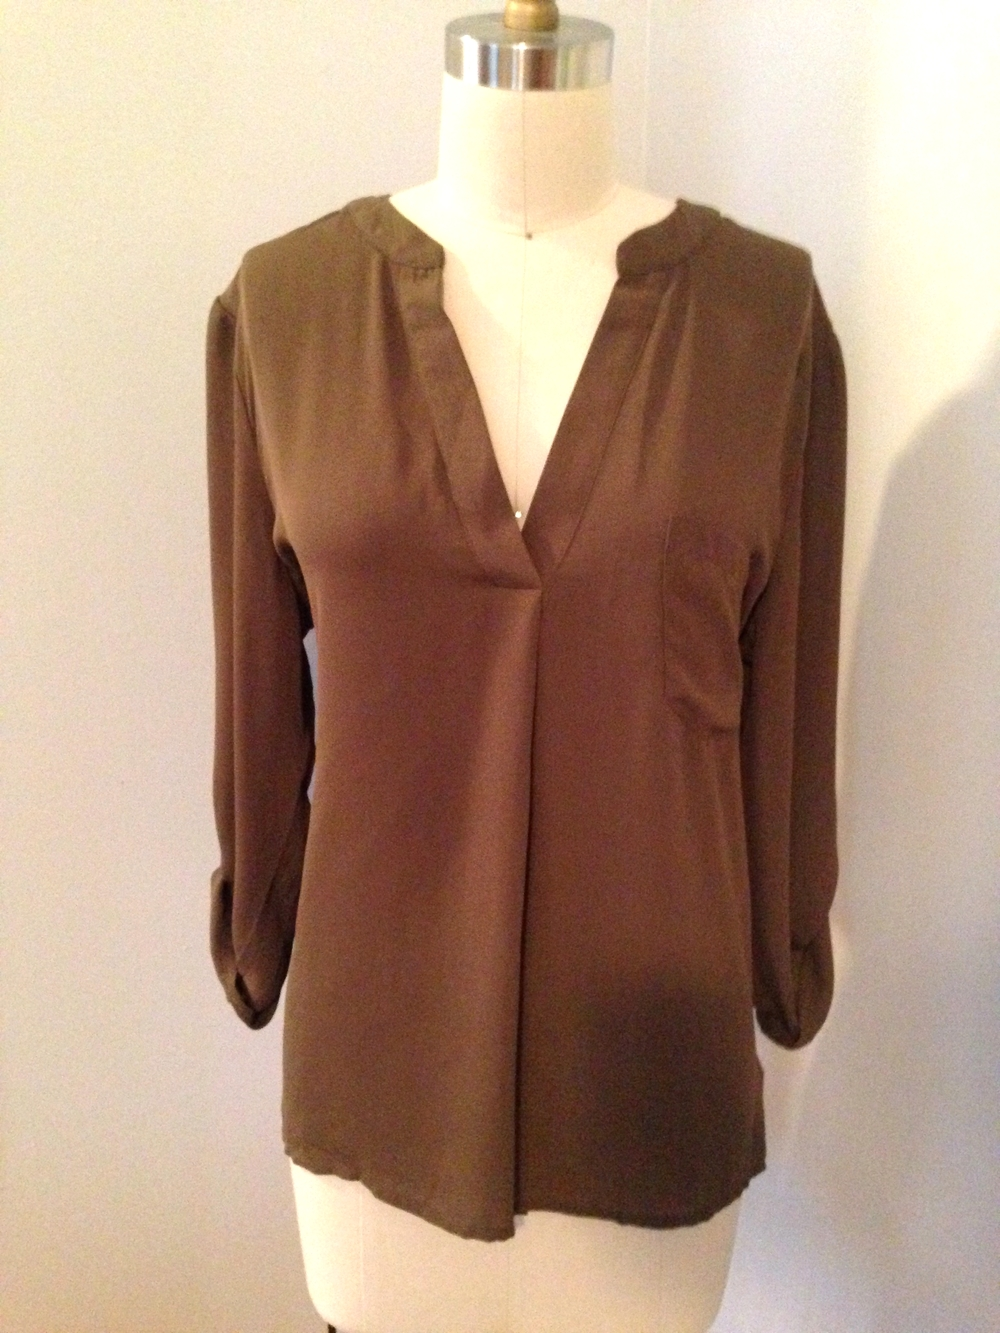 Olive Blouse ($30)